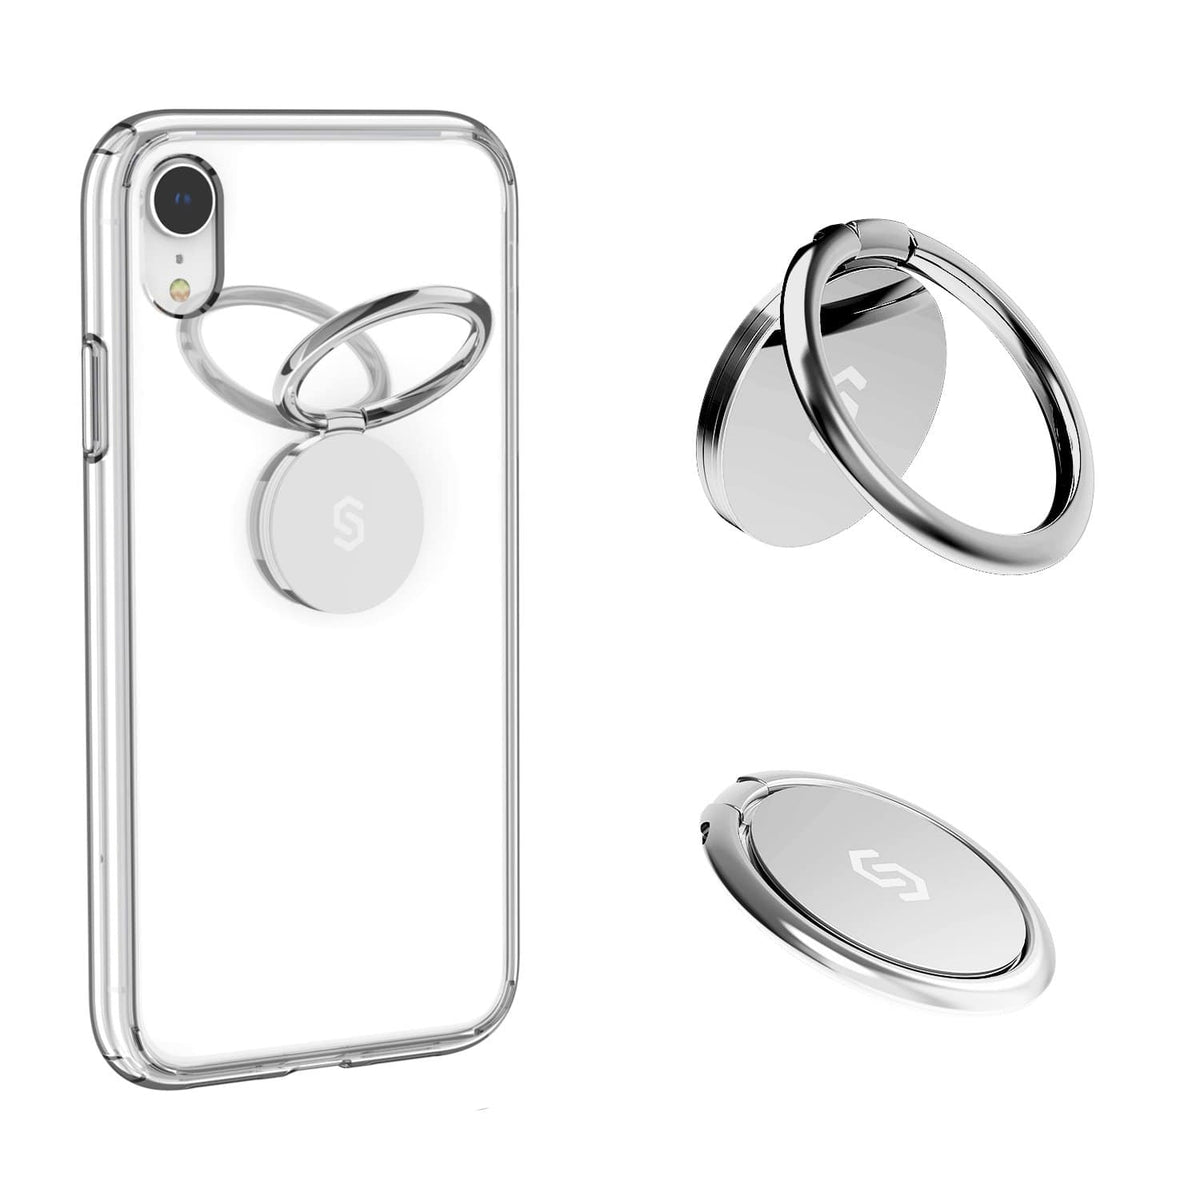 Syncwire Phone Ring Holder-Sliver - Syncwire